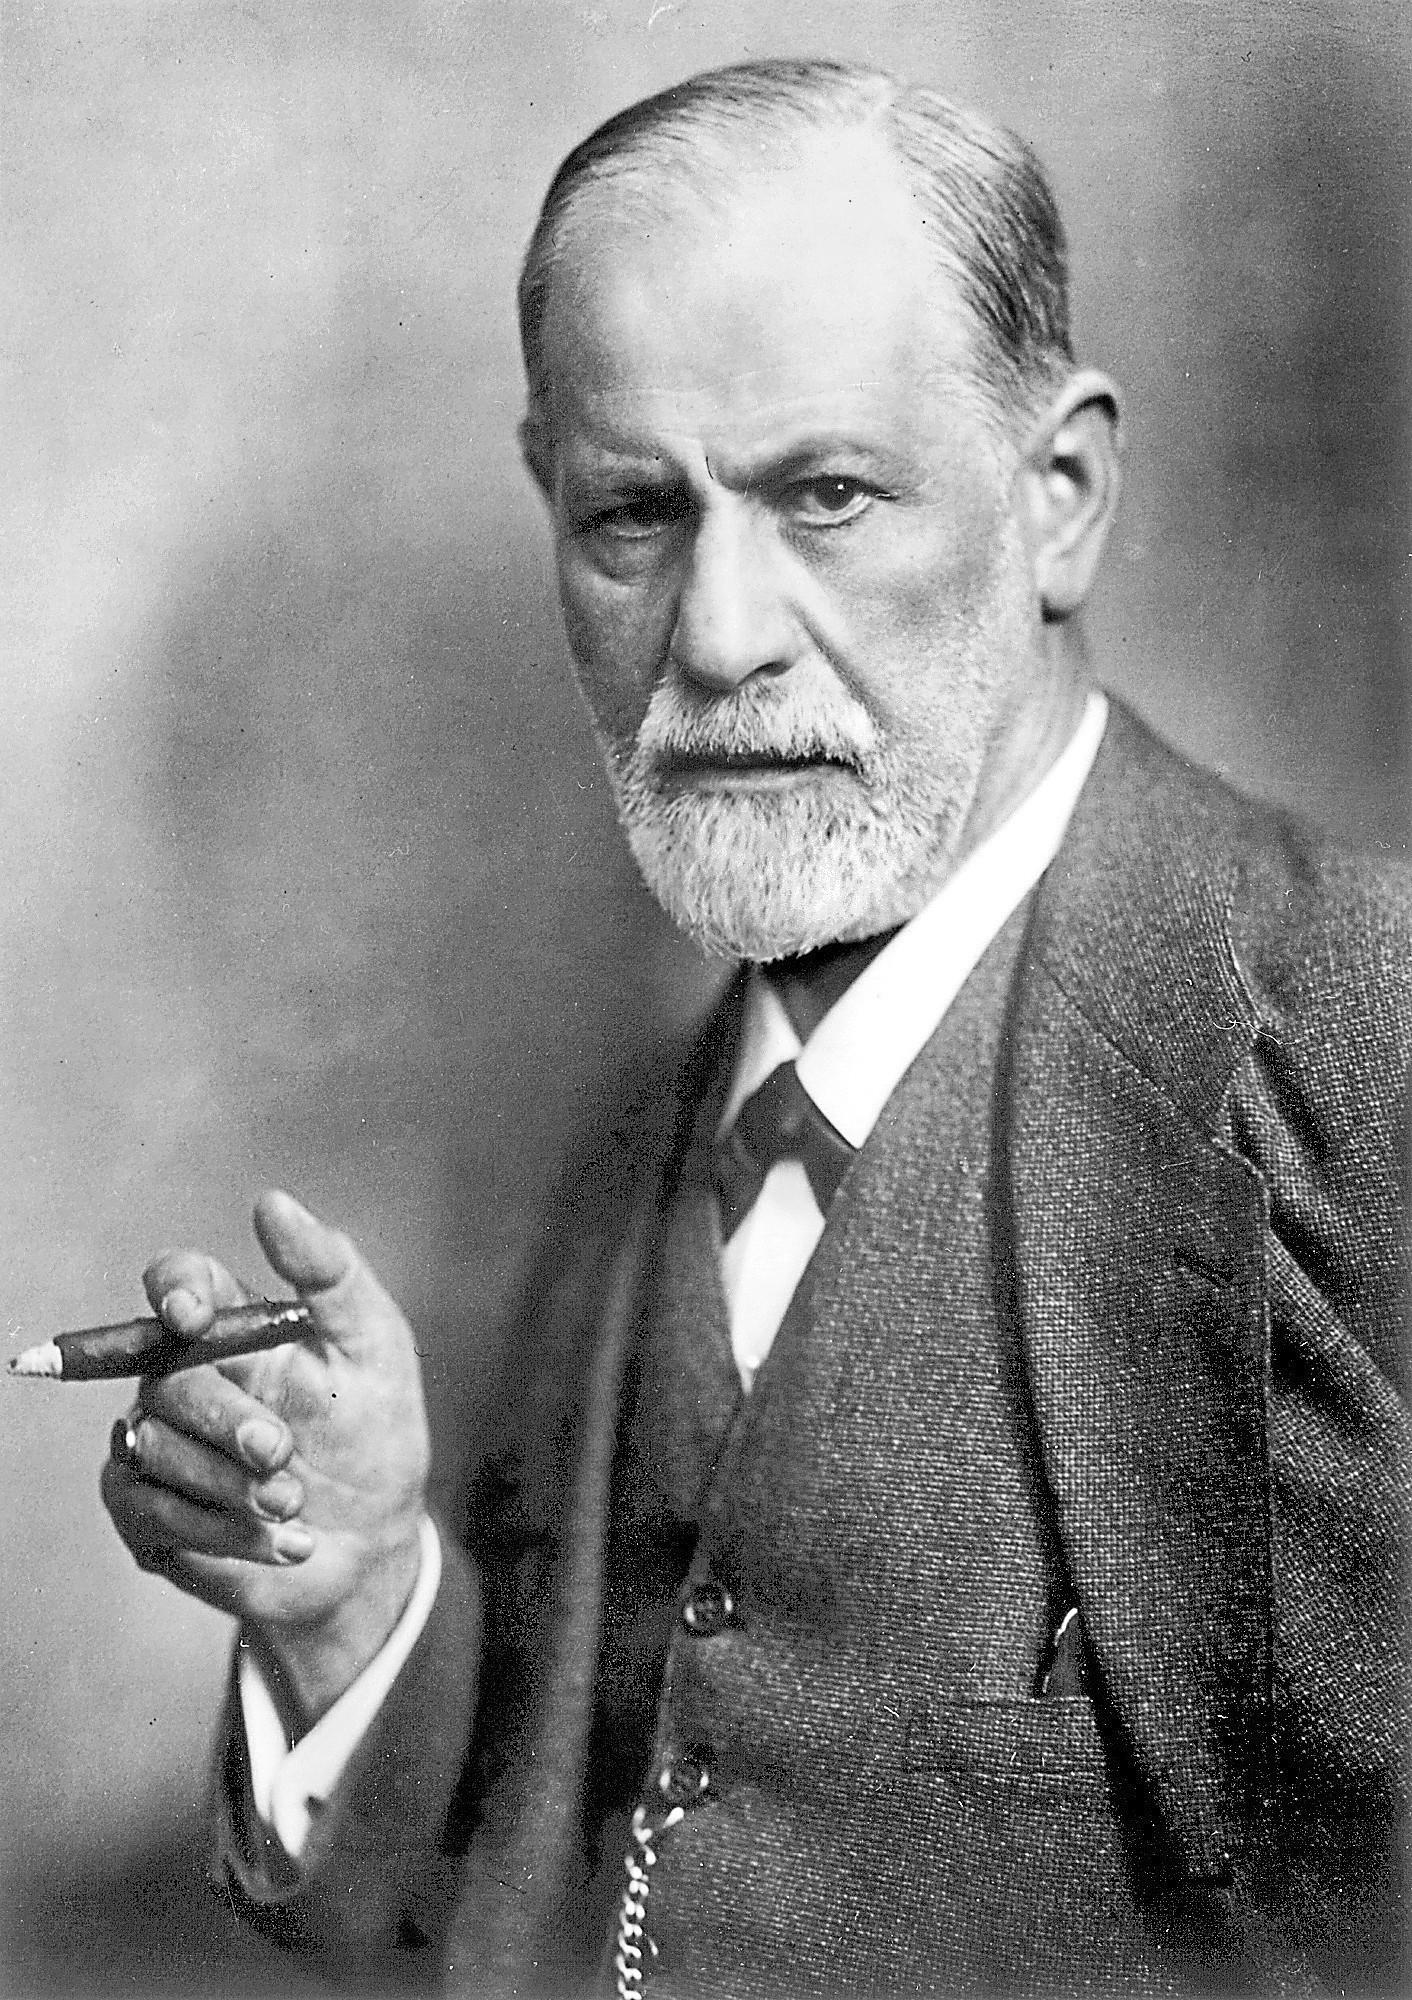 sigmund freud ideology Therapy and ideology: psychoanalysis and its vicissitudes in pre-state israel (including some hitherto unpublished letters by sigmund freud and albert einstein.